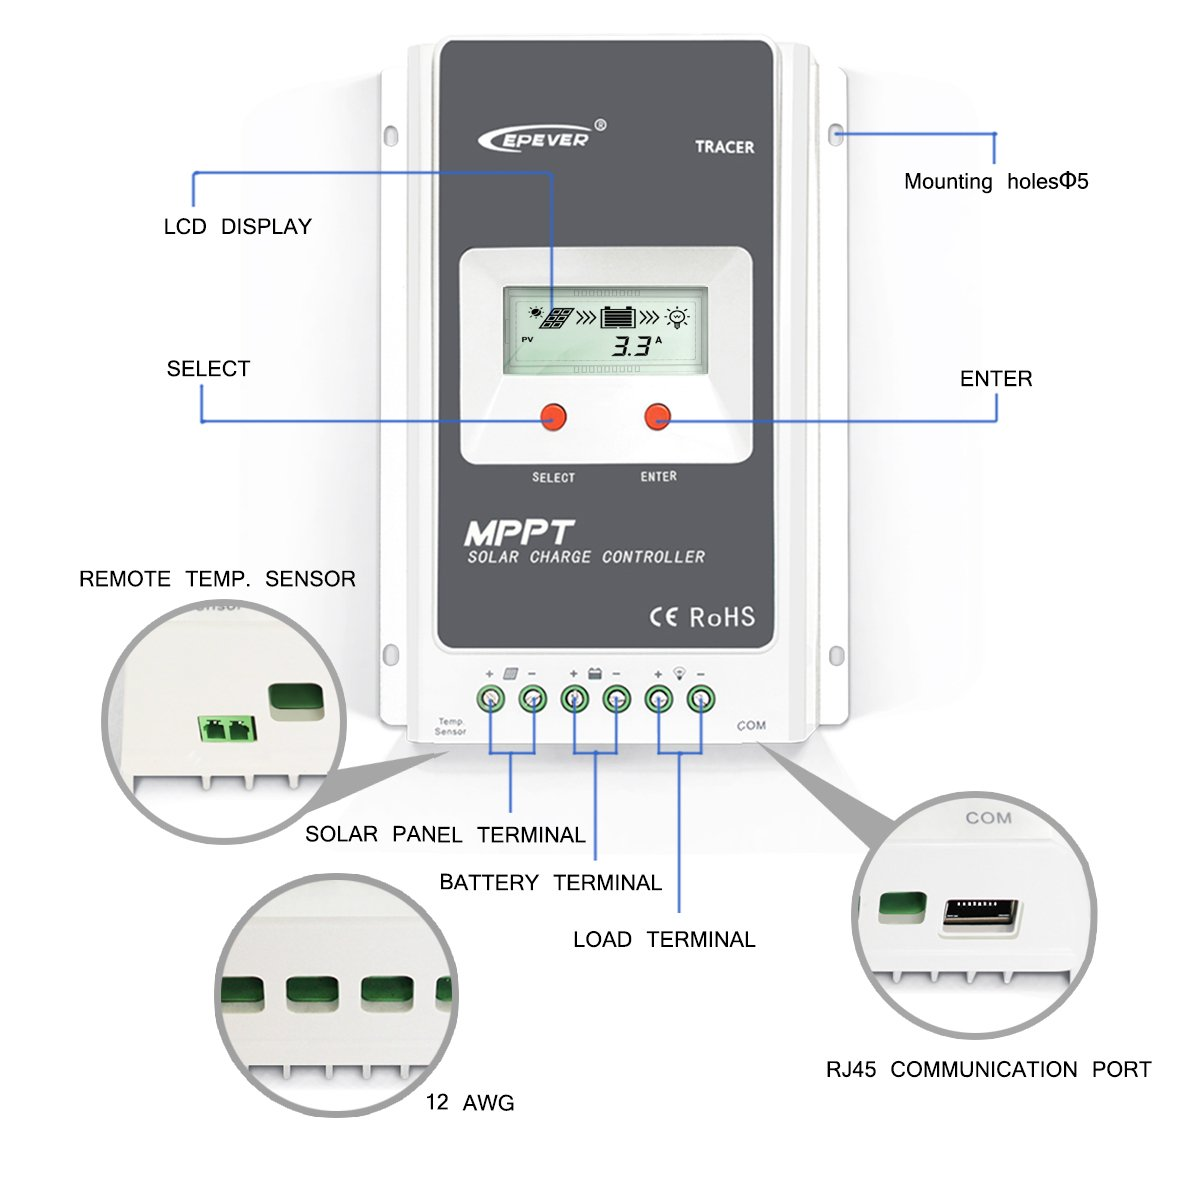 Epever 10a Mppt Charge Controller With Lcd Display Automax Limit Switch Xcl Wiring Diagram 100v Max Input 12v 24v Auto Garden Outdoor